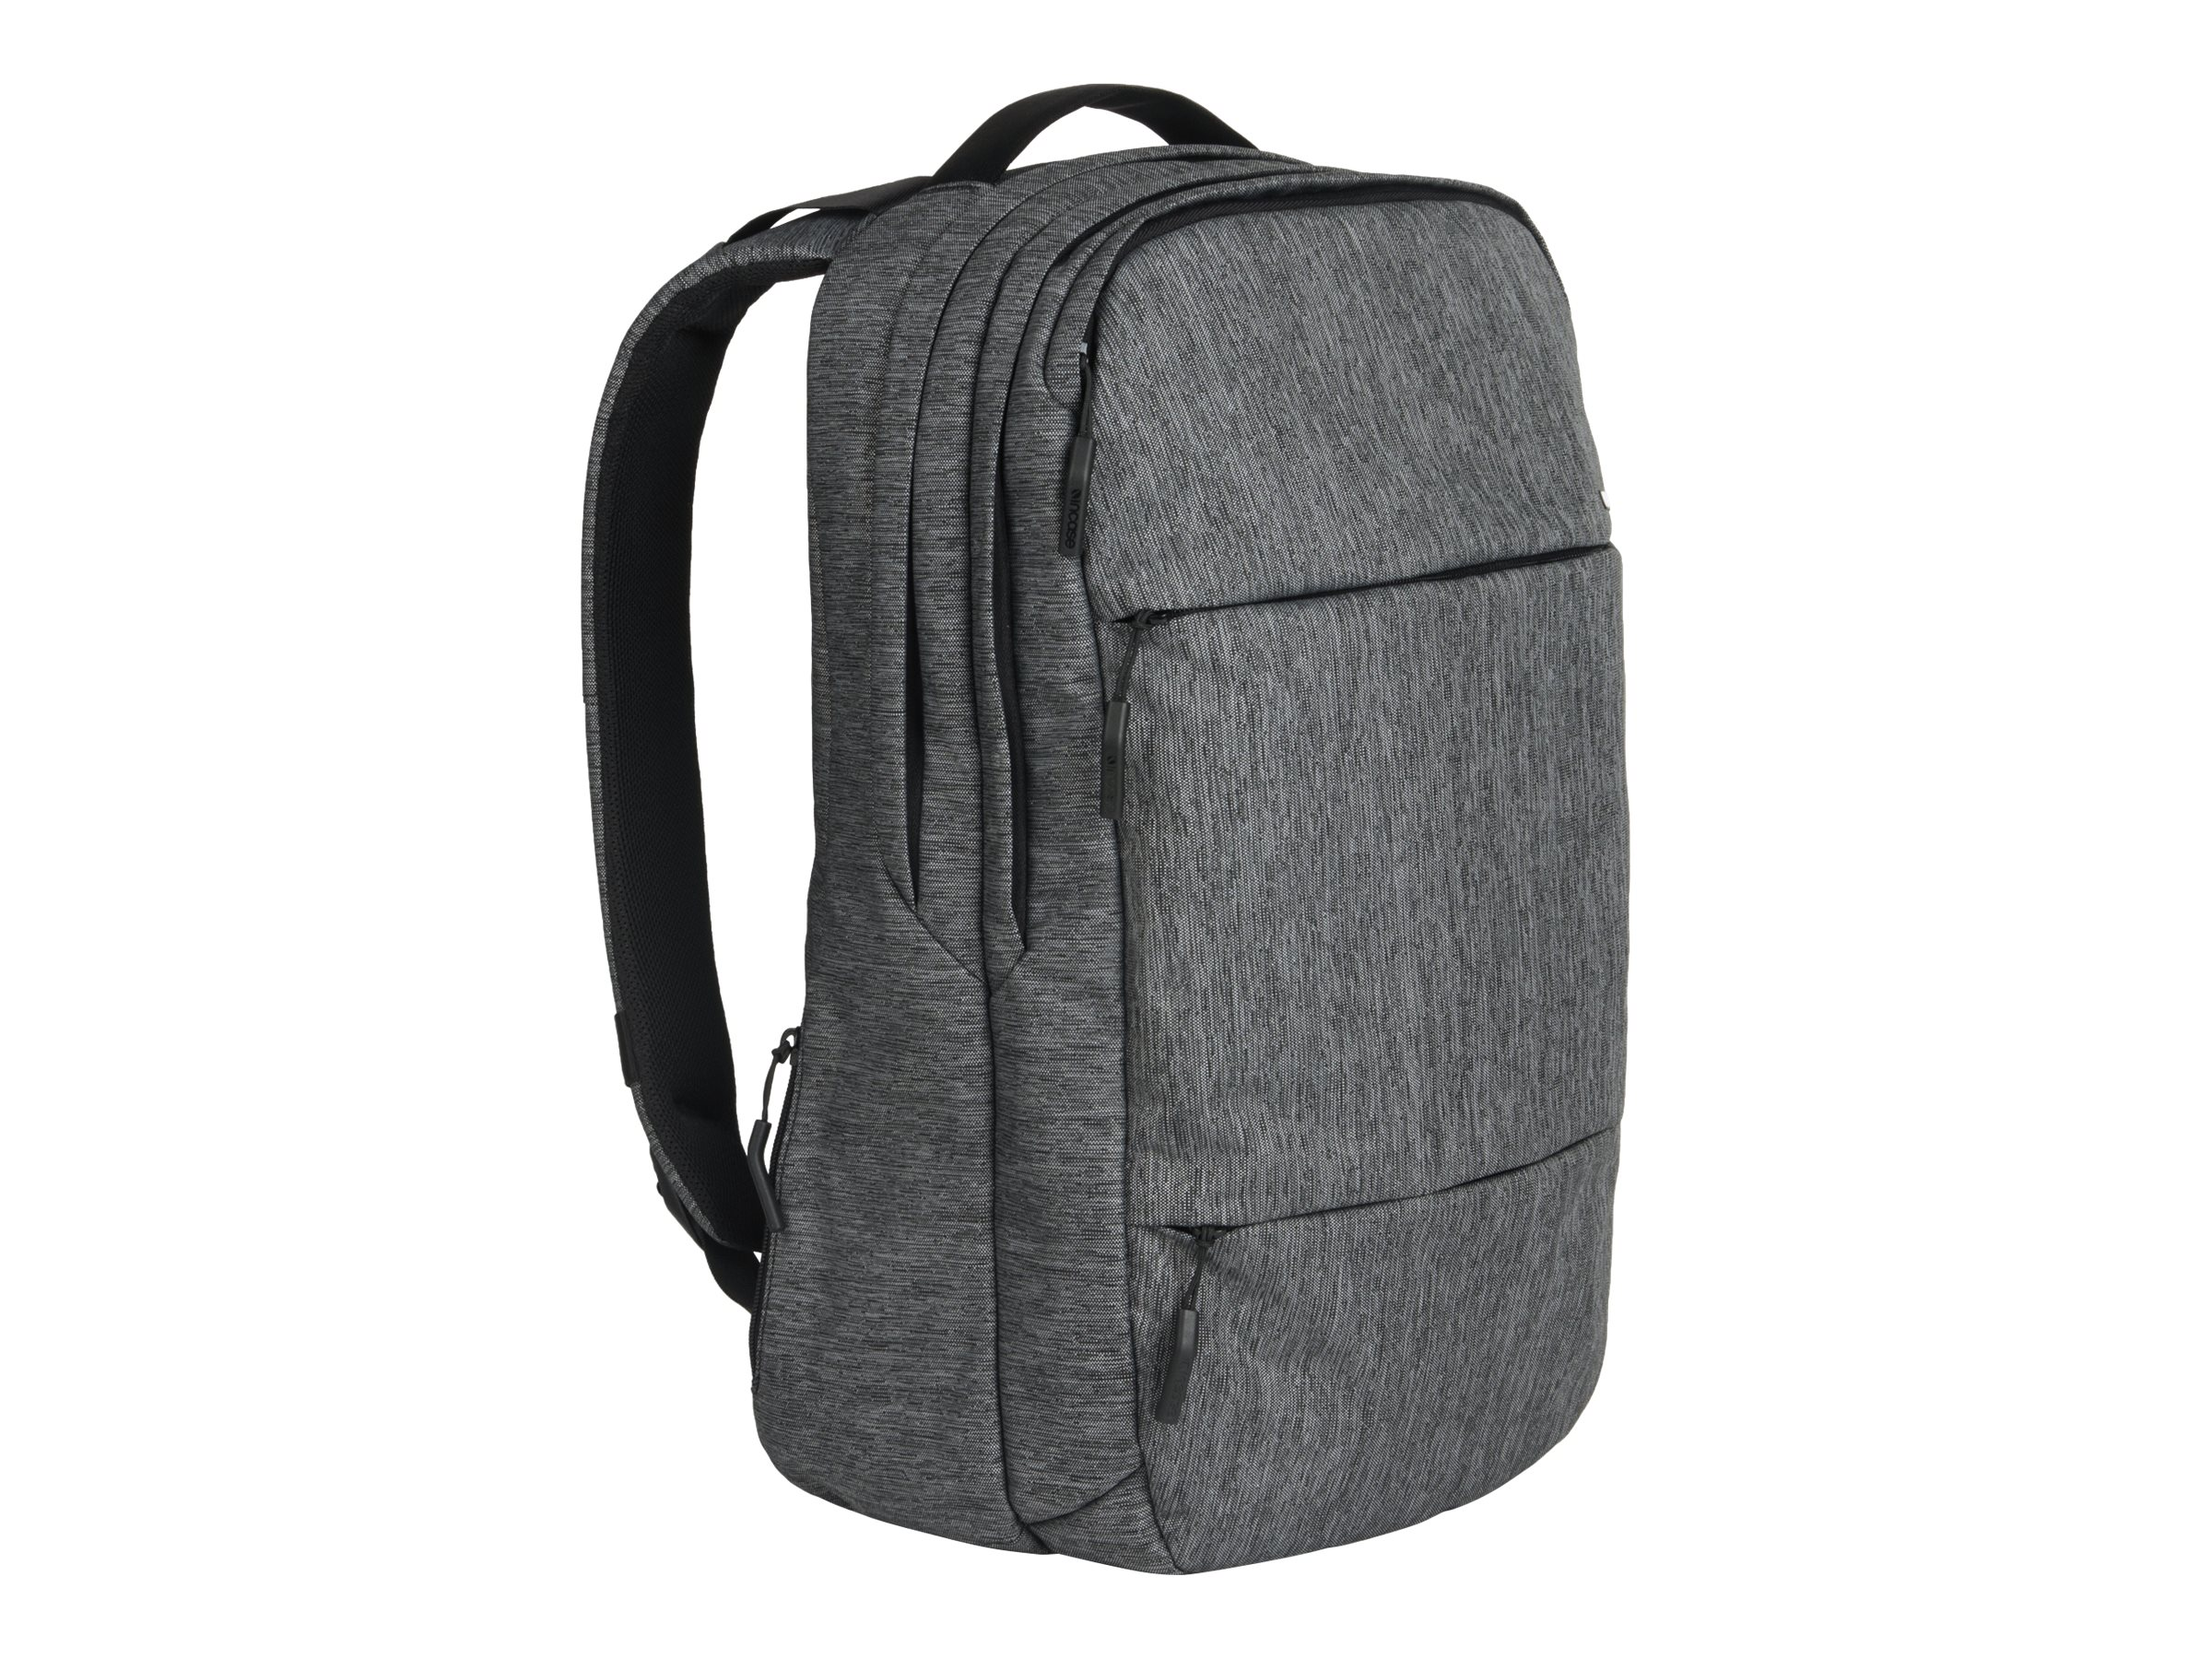 Incase Designs City notebook carrying backpack